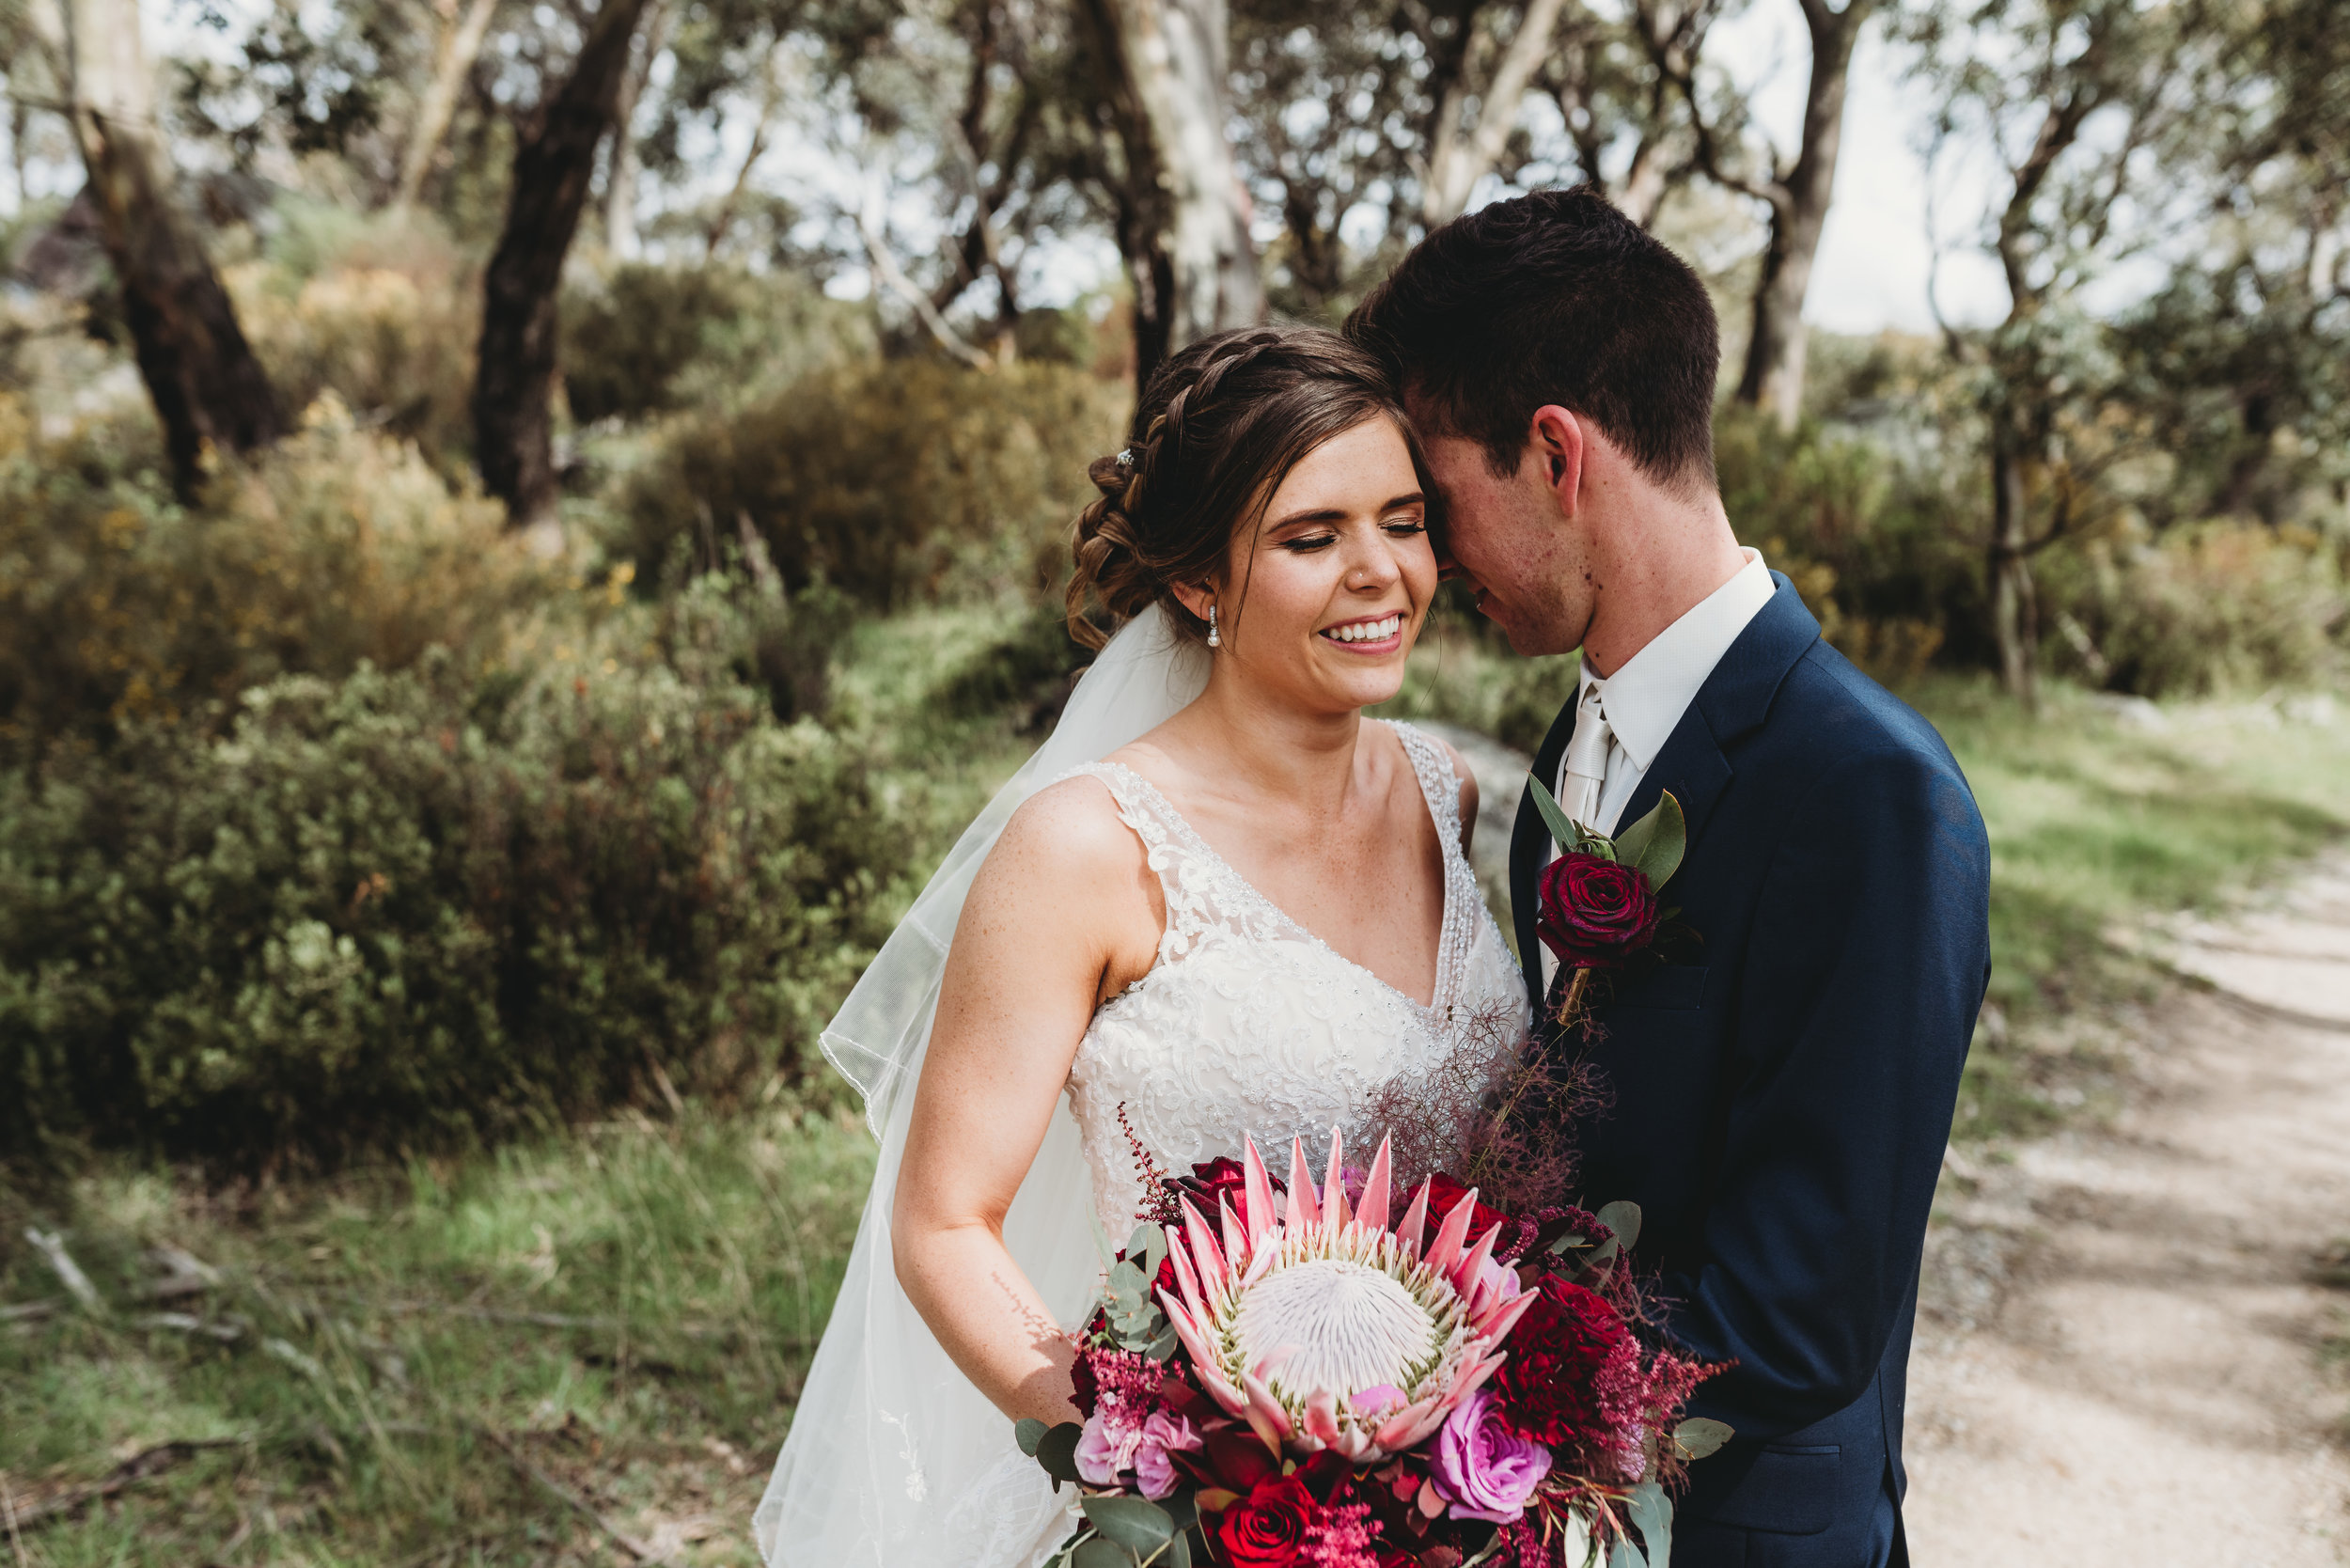 Claudia & Greg - Lake Crackenback Wedding    24th November 2018